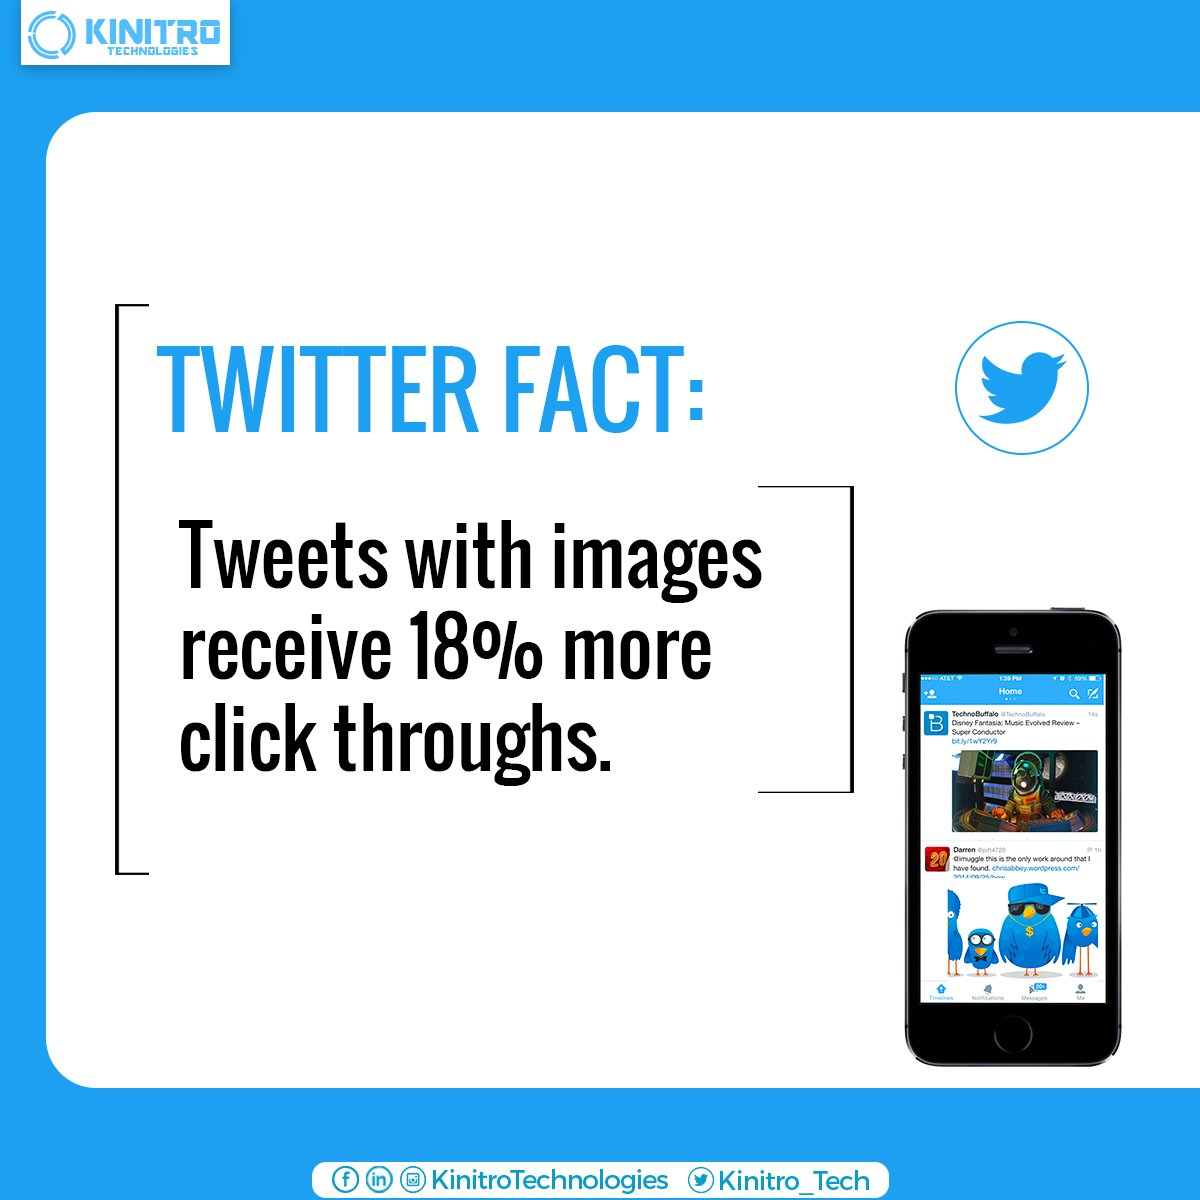 #Didyouknow tweets with images receive 18% more click throughs! #Twitter #TwitterMarketing #SocialMediaMarketing https://t.co/IBQr7l6vMK